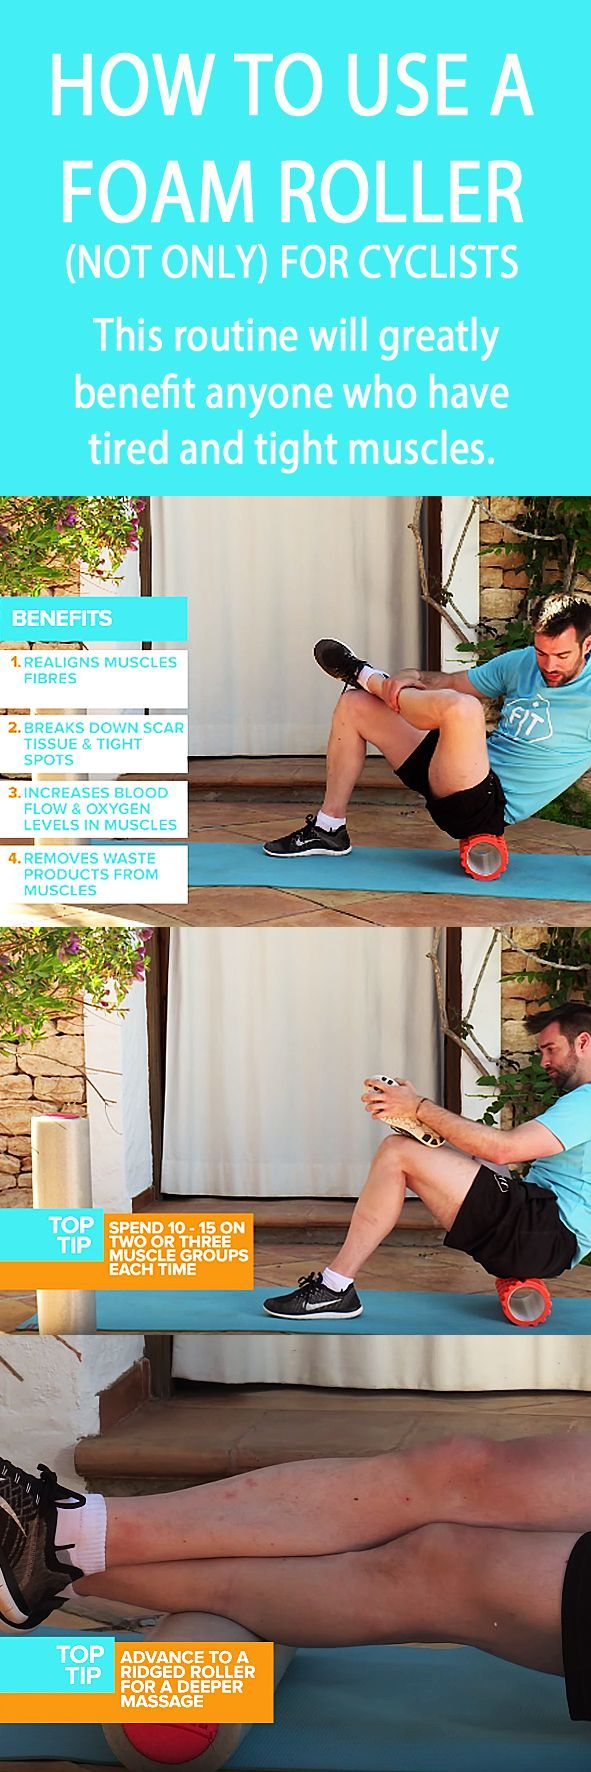 How to use a foam roller tutorial | #fitness